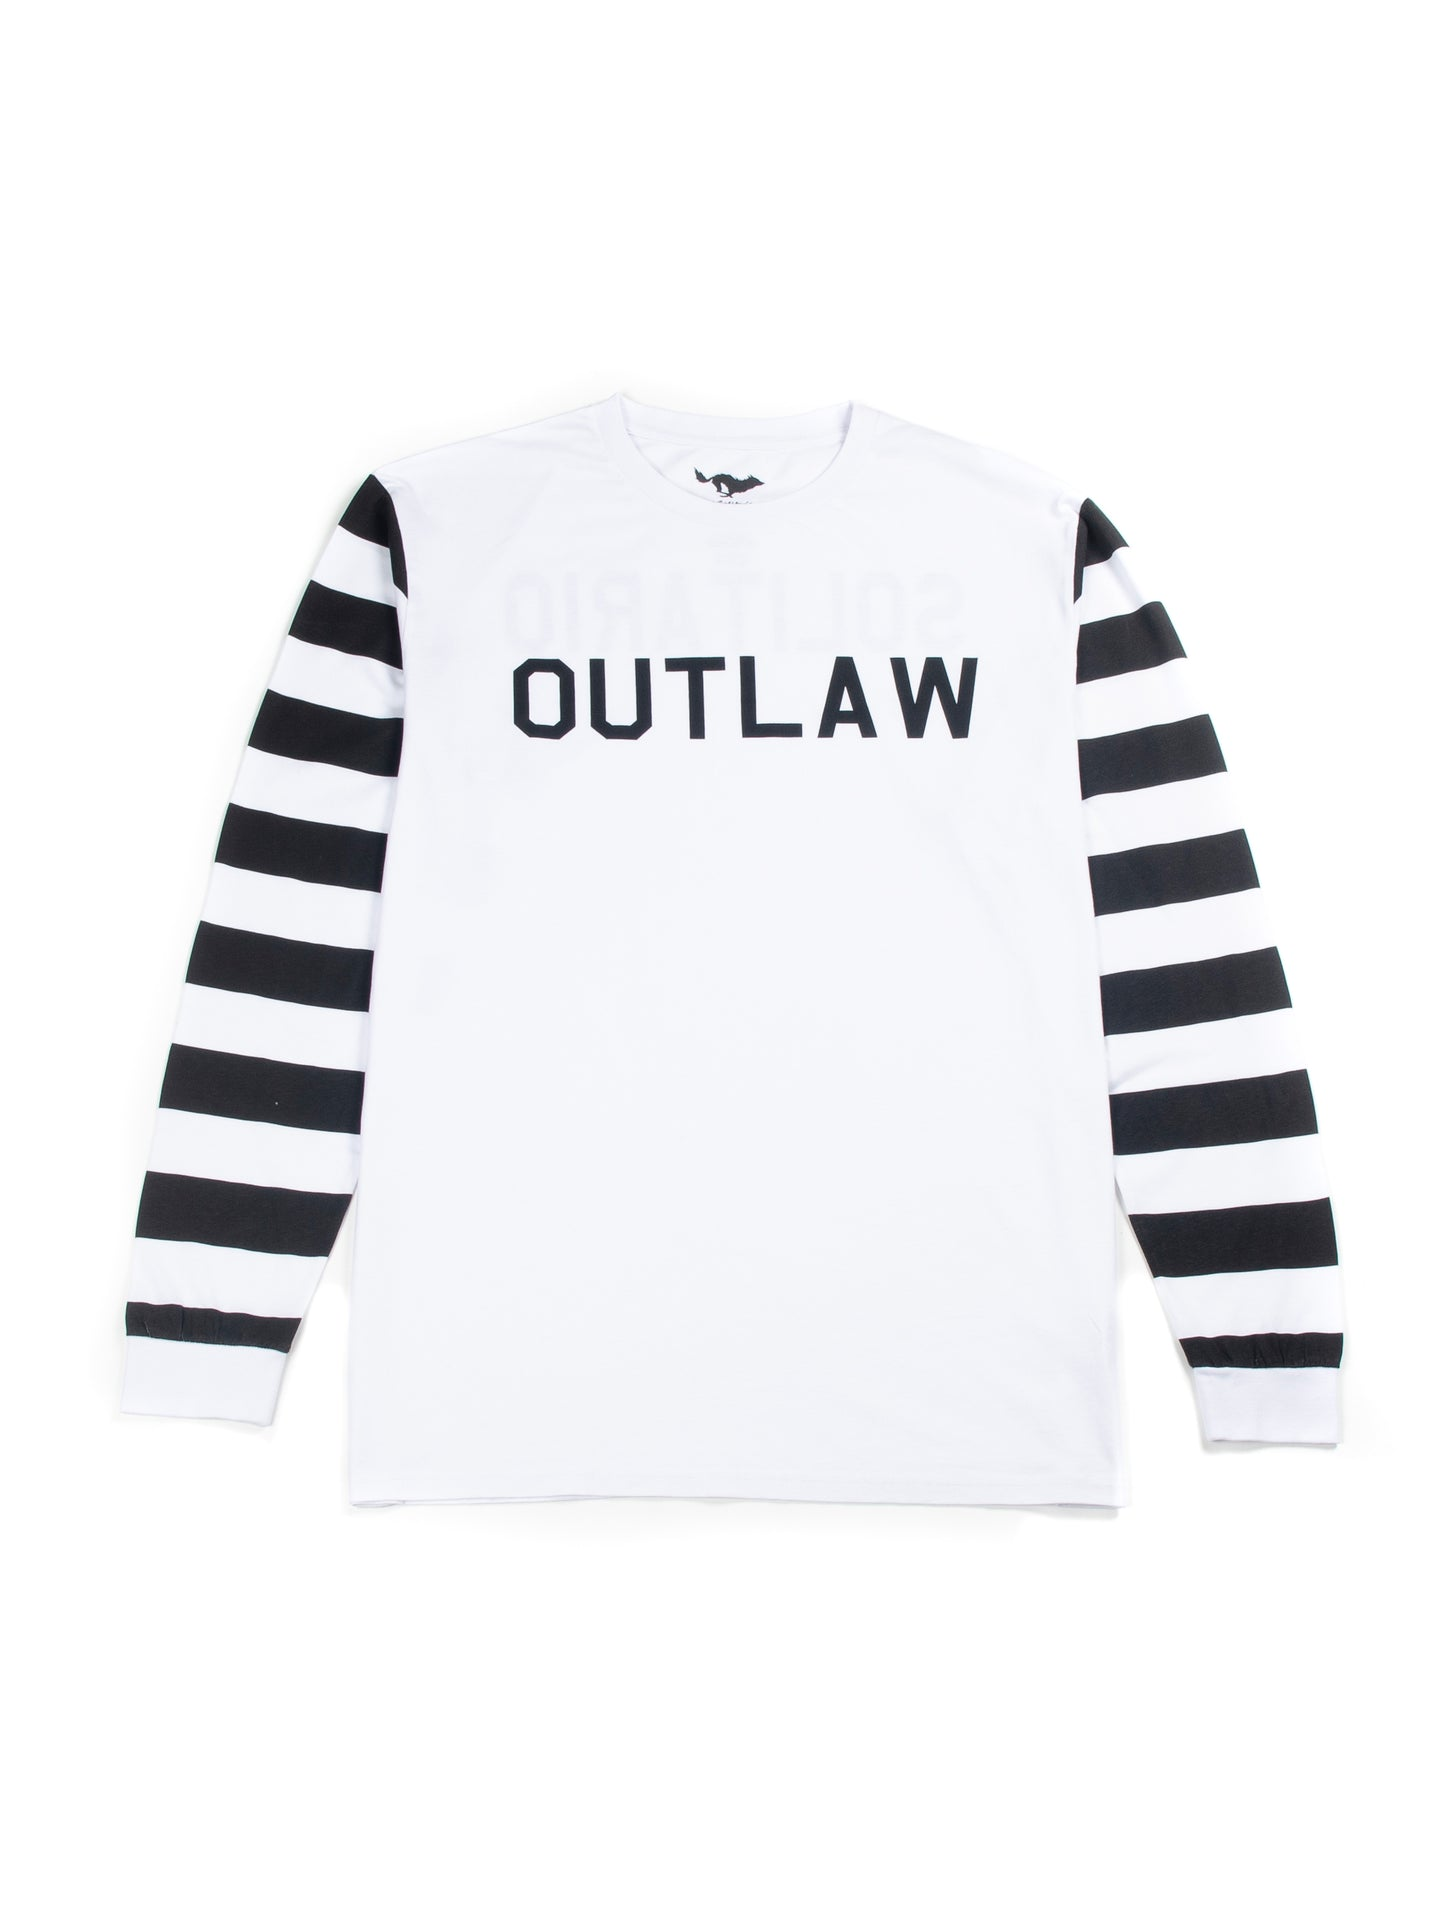 Outlaw White Long Sleeve T-shirt